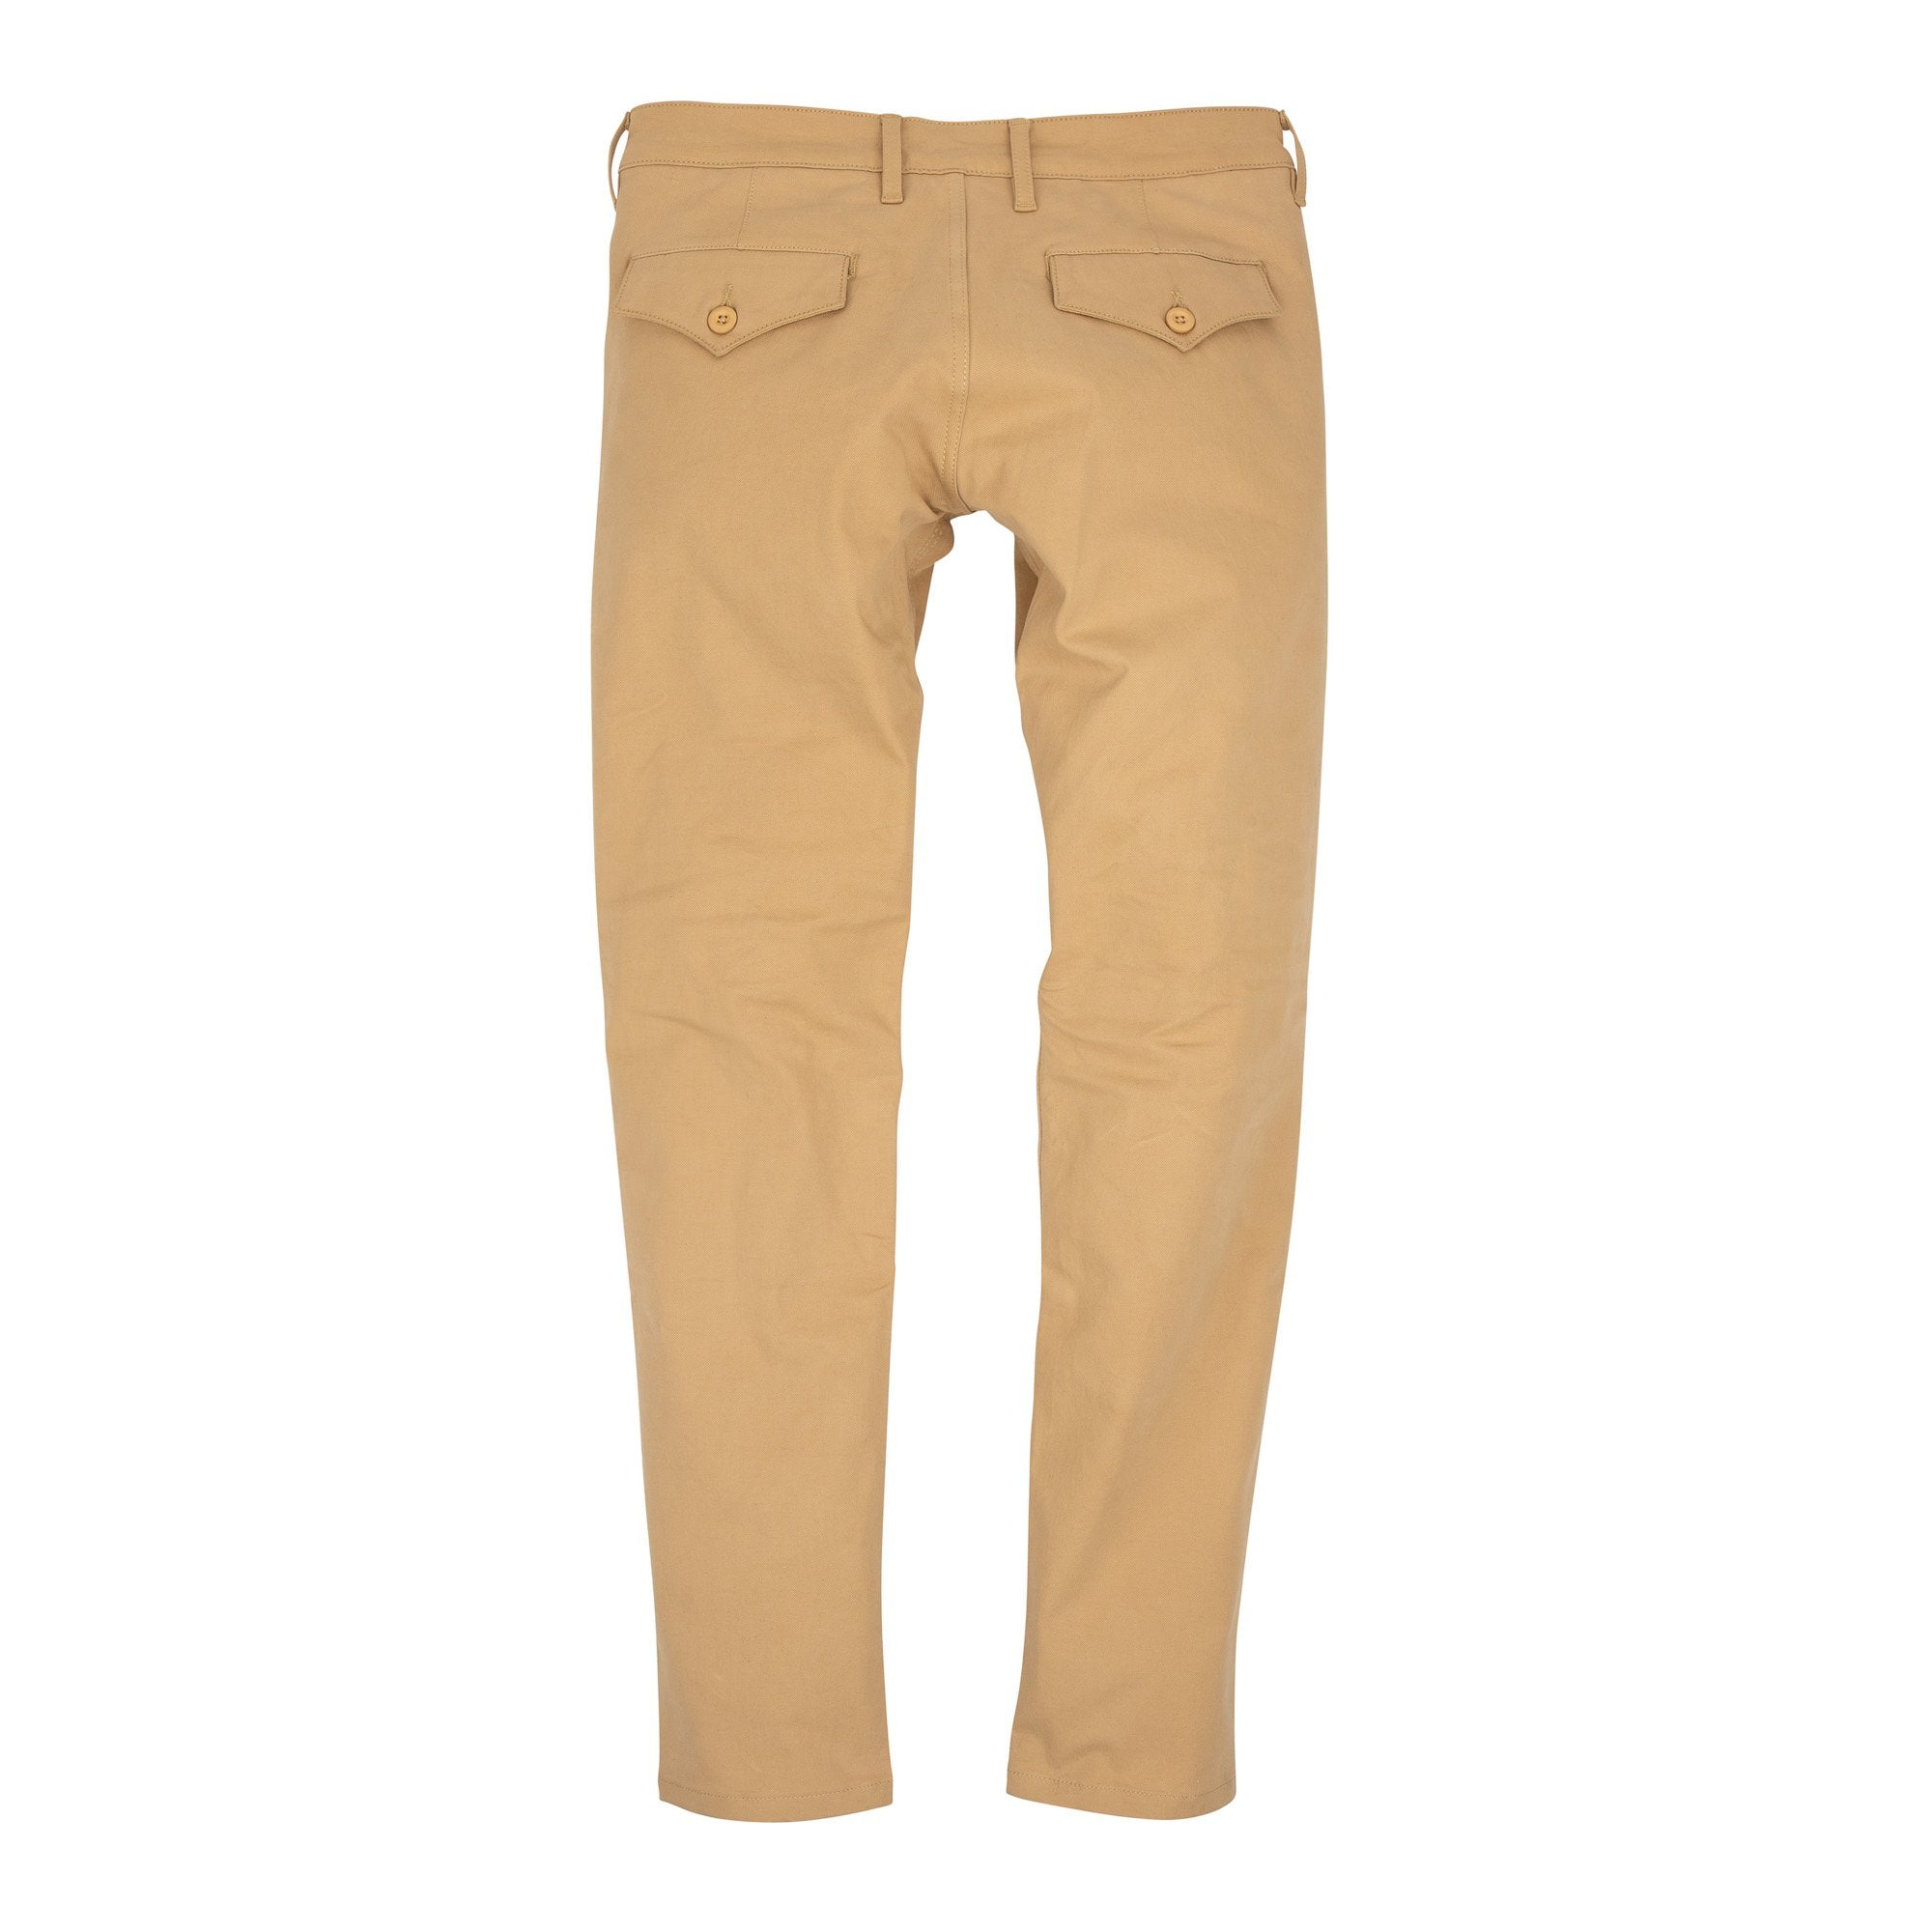 Resurgence Gear 2020 City Chino Sand PEKEV Motorcycle Jeans